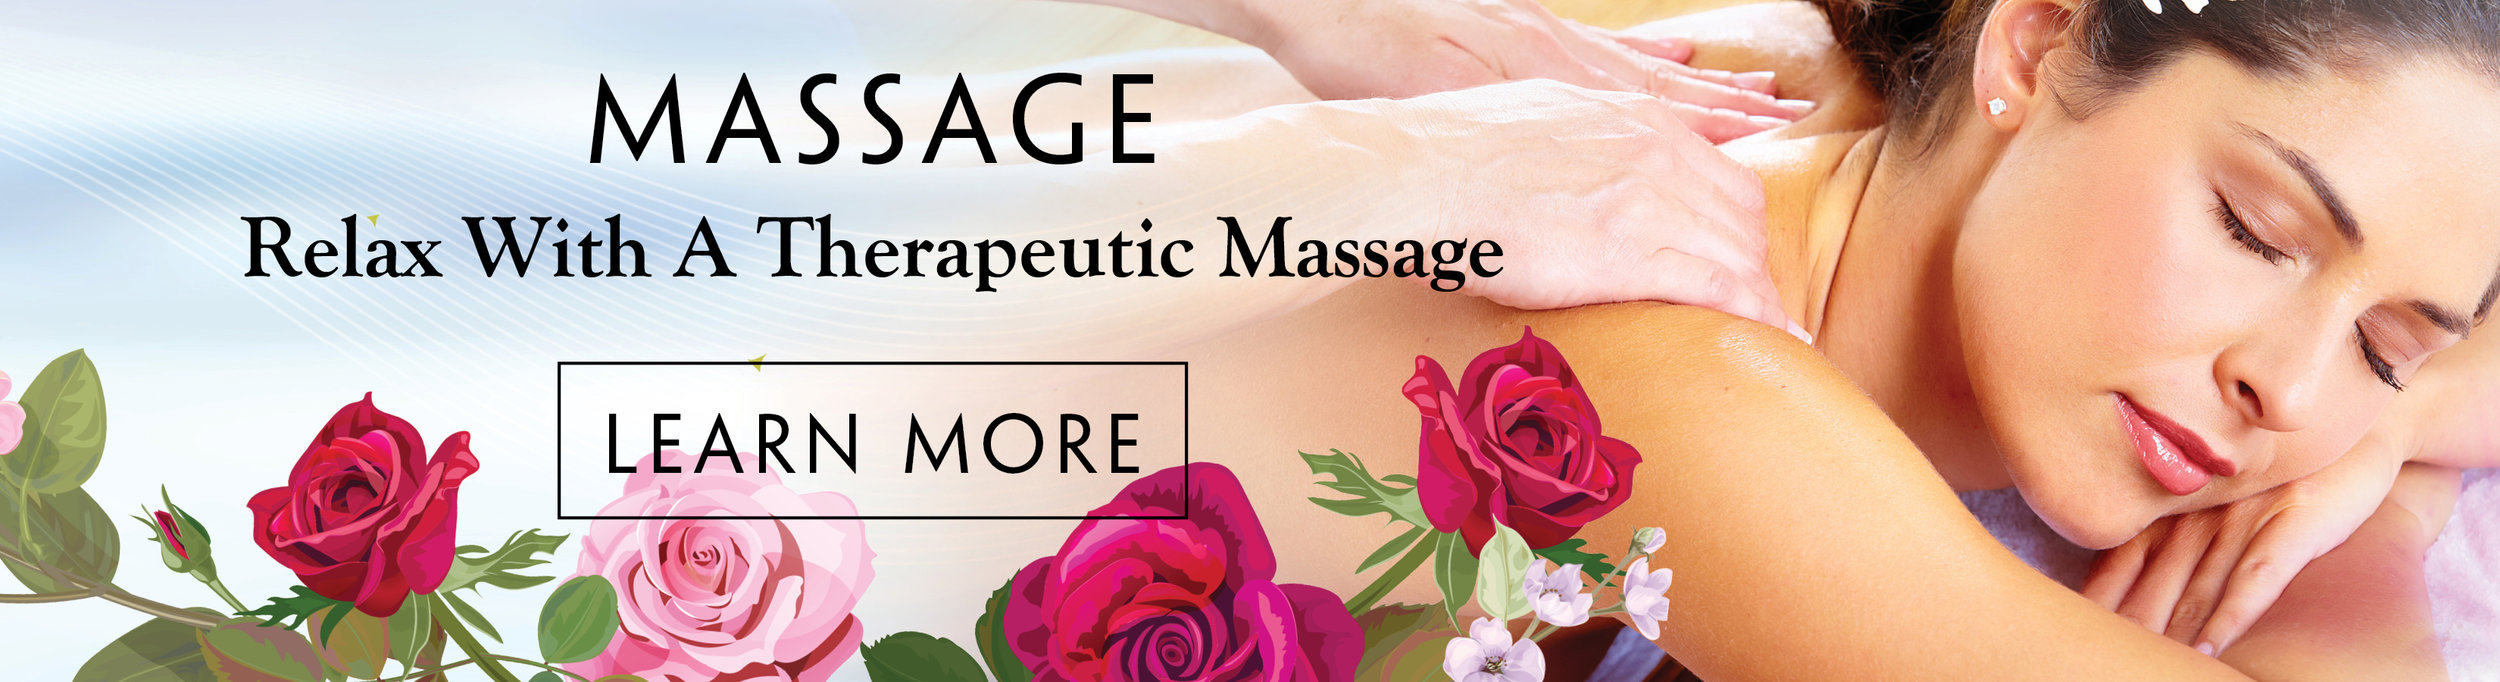 Mother's Day Massage Pic 2019.jpg